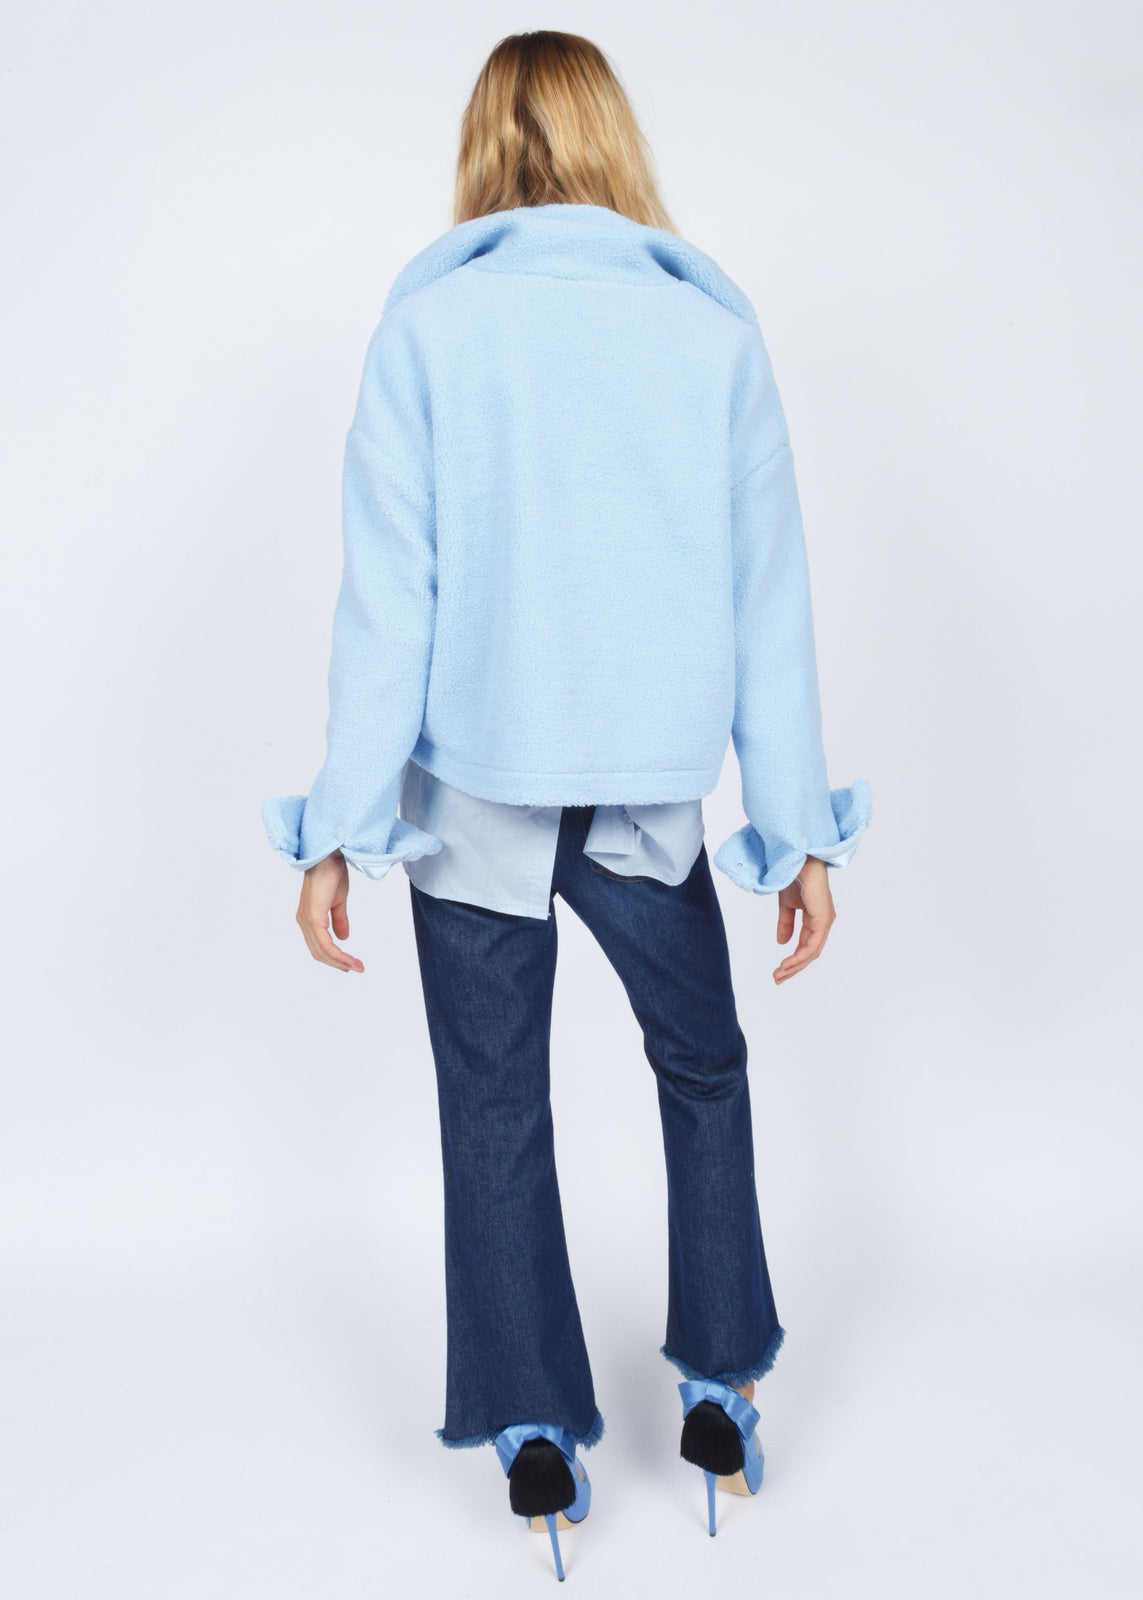 TEDDY PULL OVER - MUTED BLUE